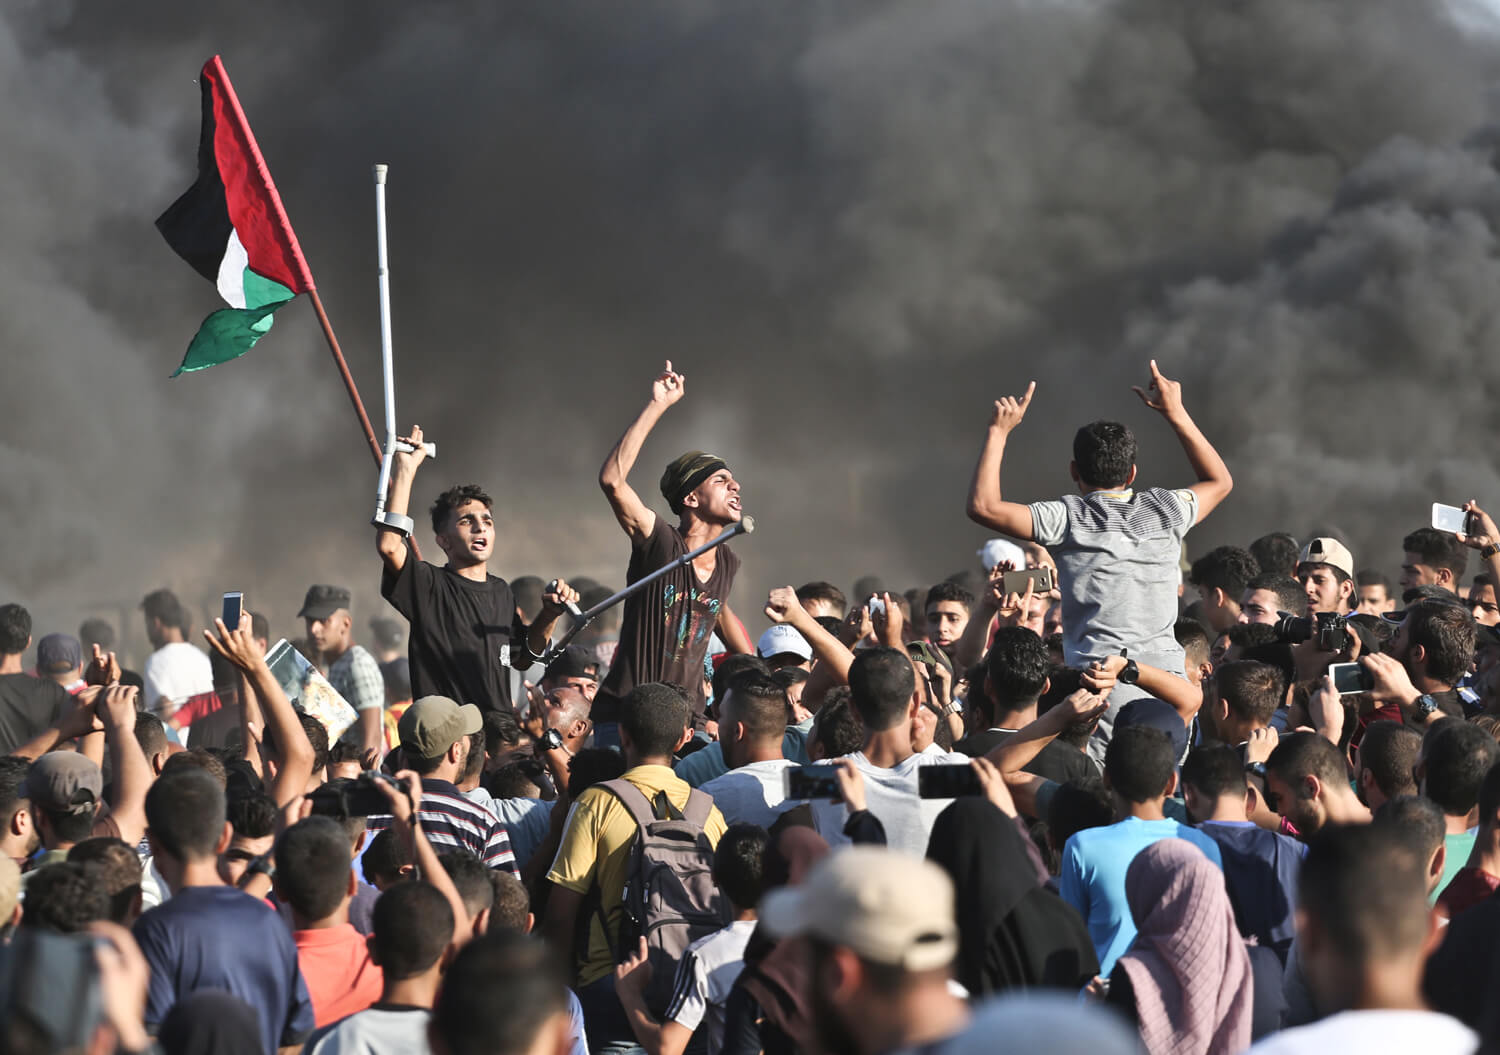 The Great March of Return in Gaza, August 10, 2018